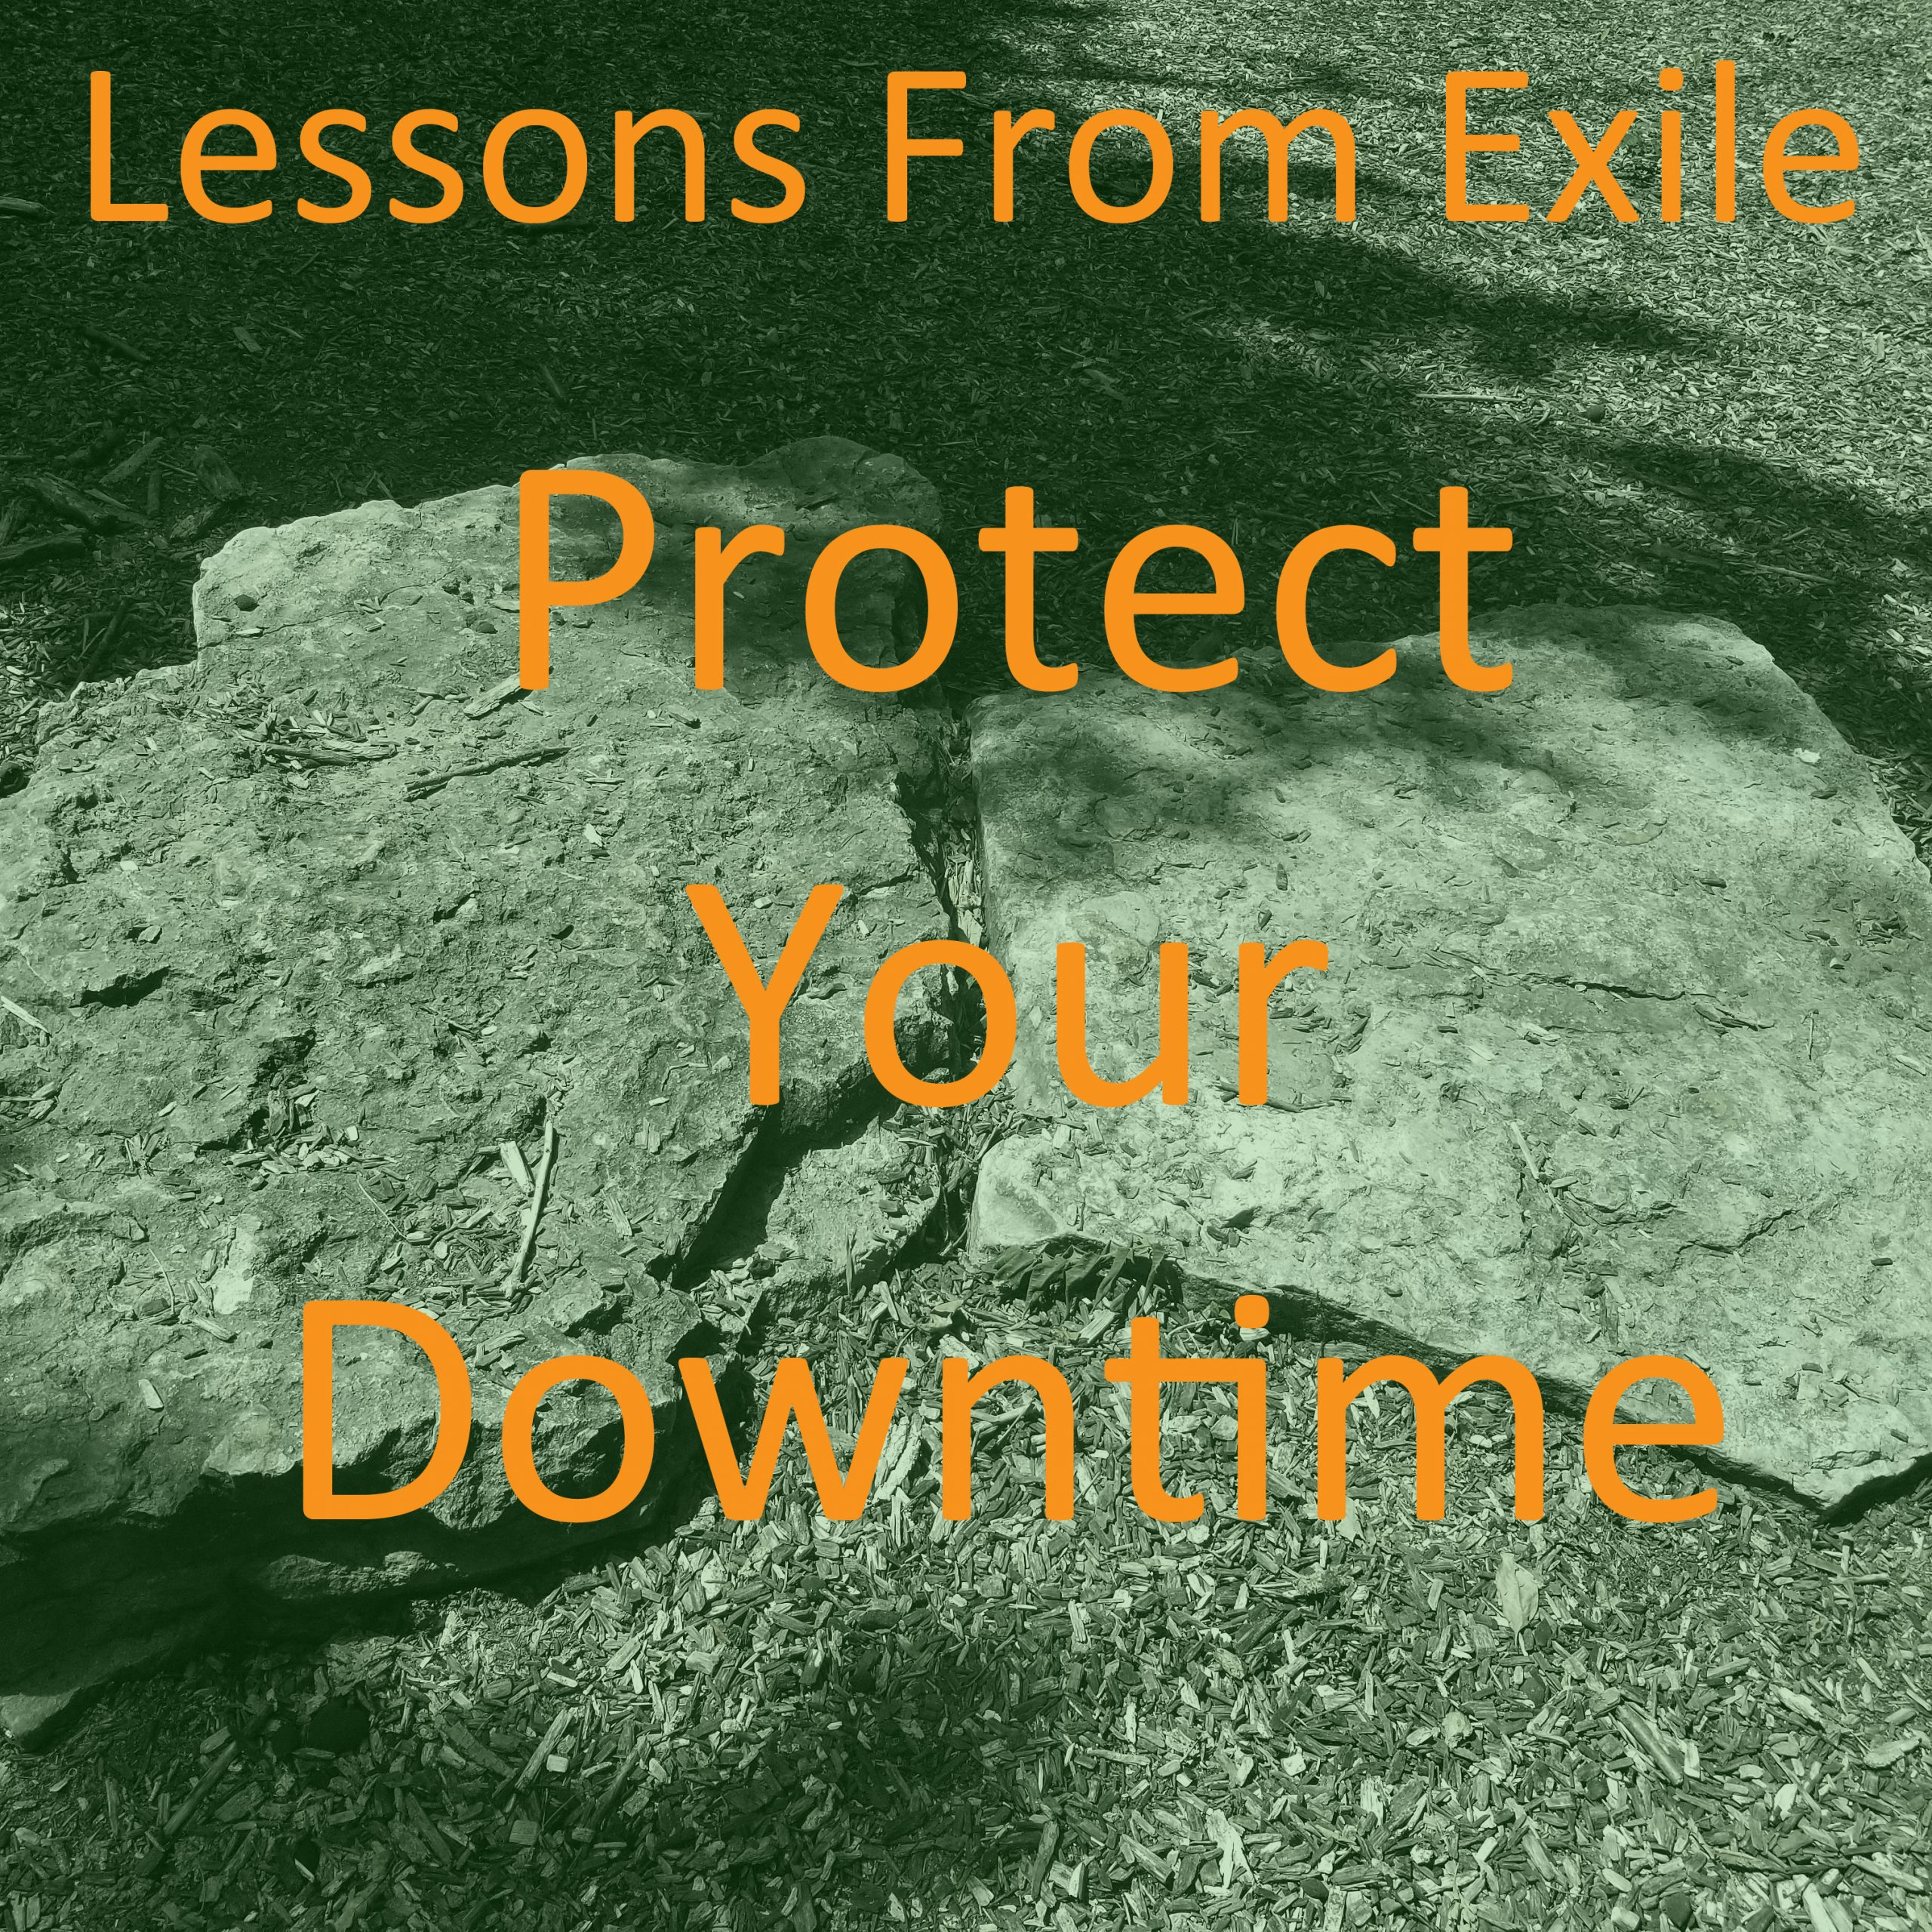 Lessons from Exile #66: Protect Your Downtime